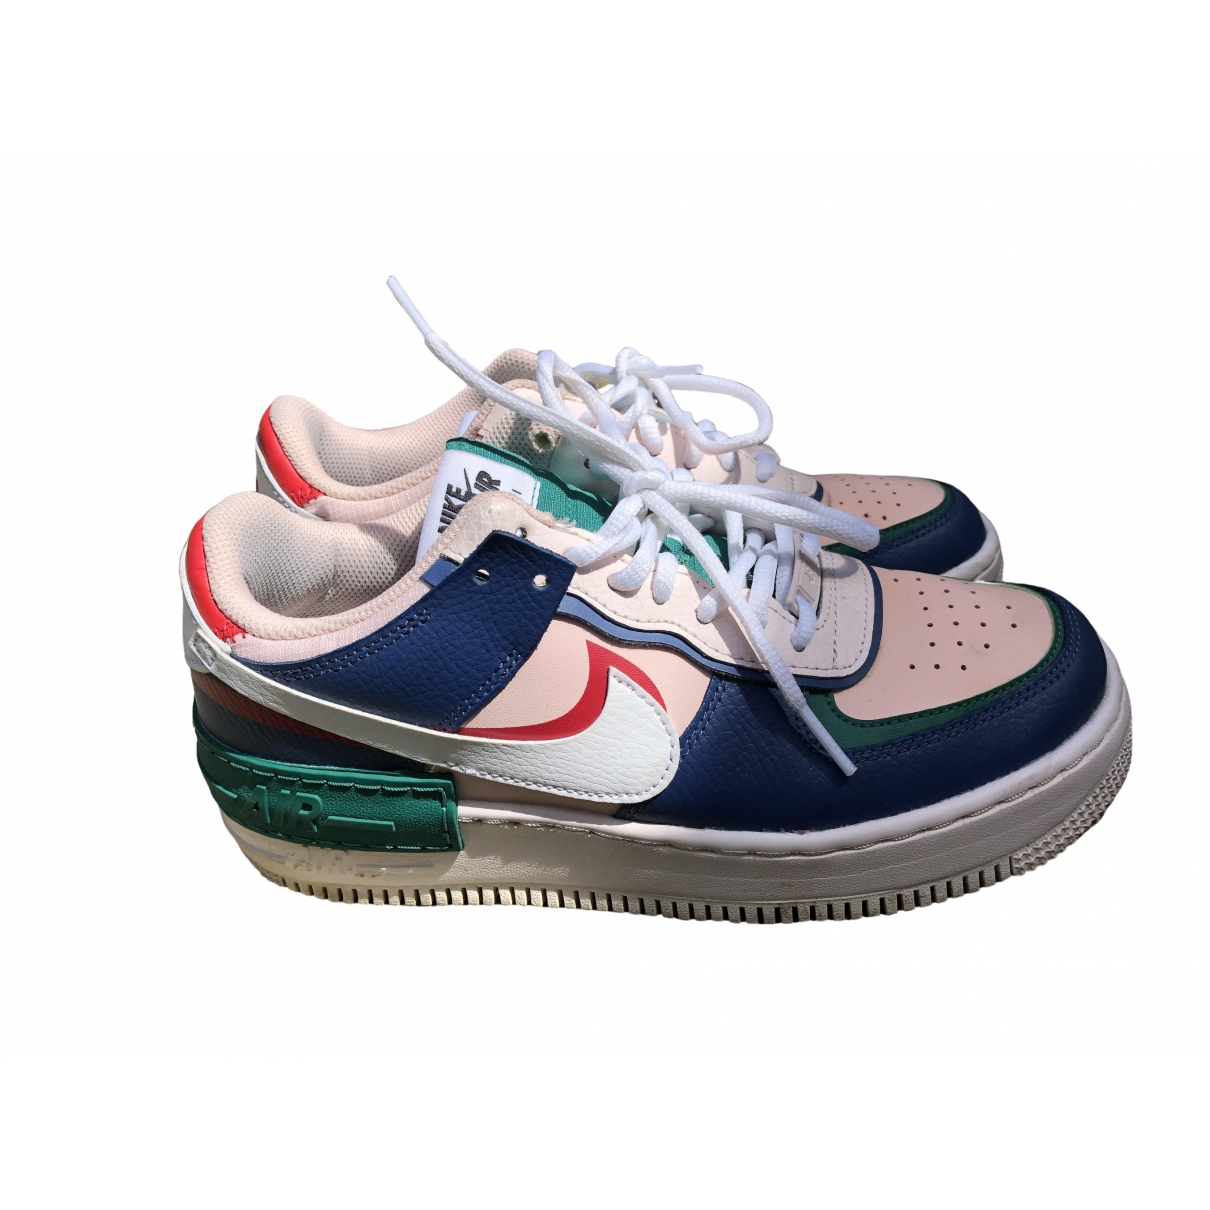 Nike Air Force 1 Multicolour Leather Trainers for Women 39 EU